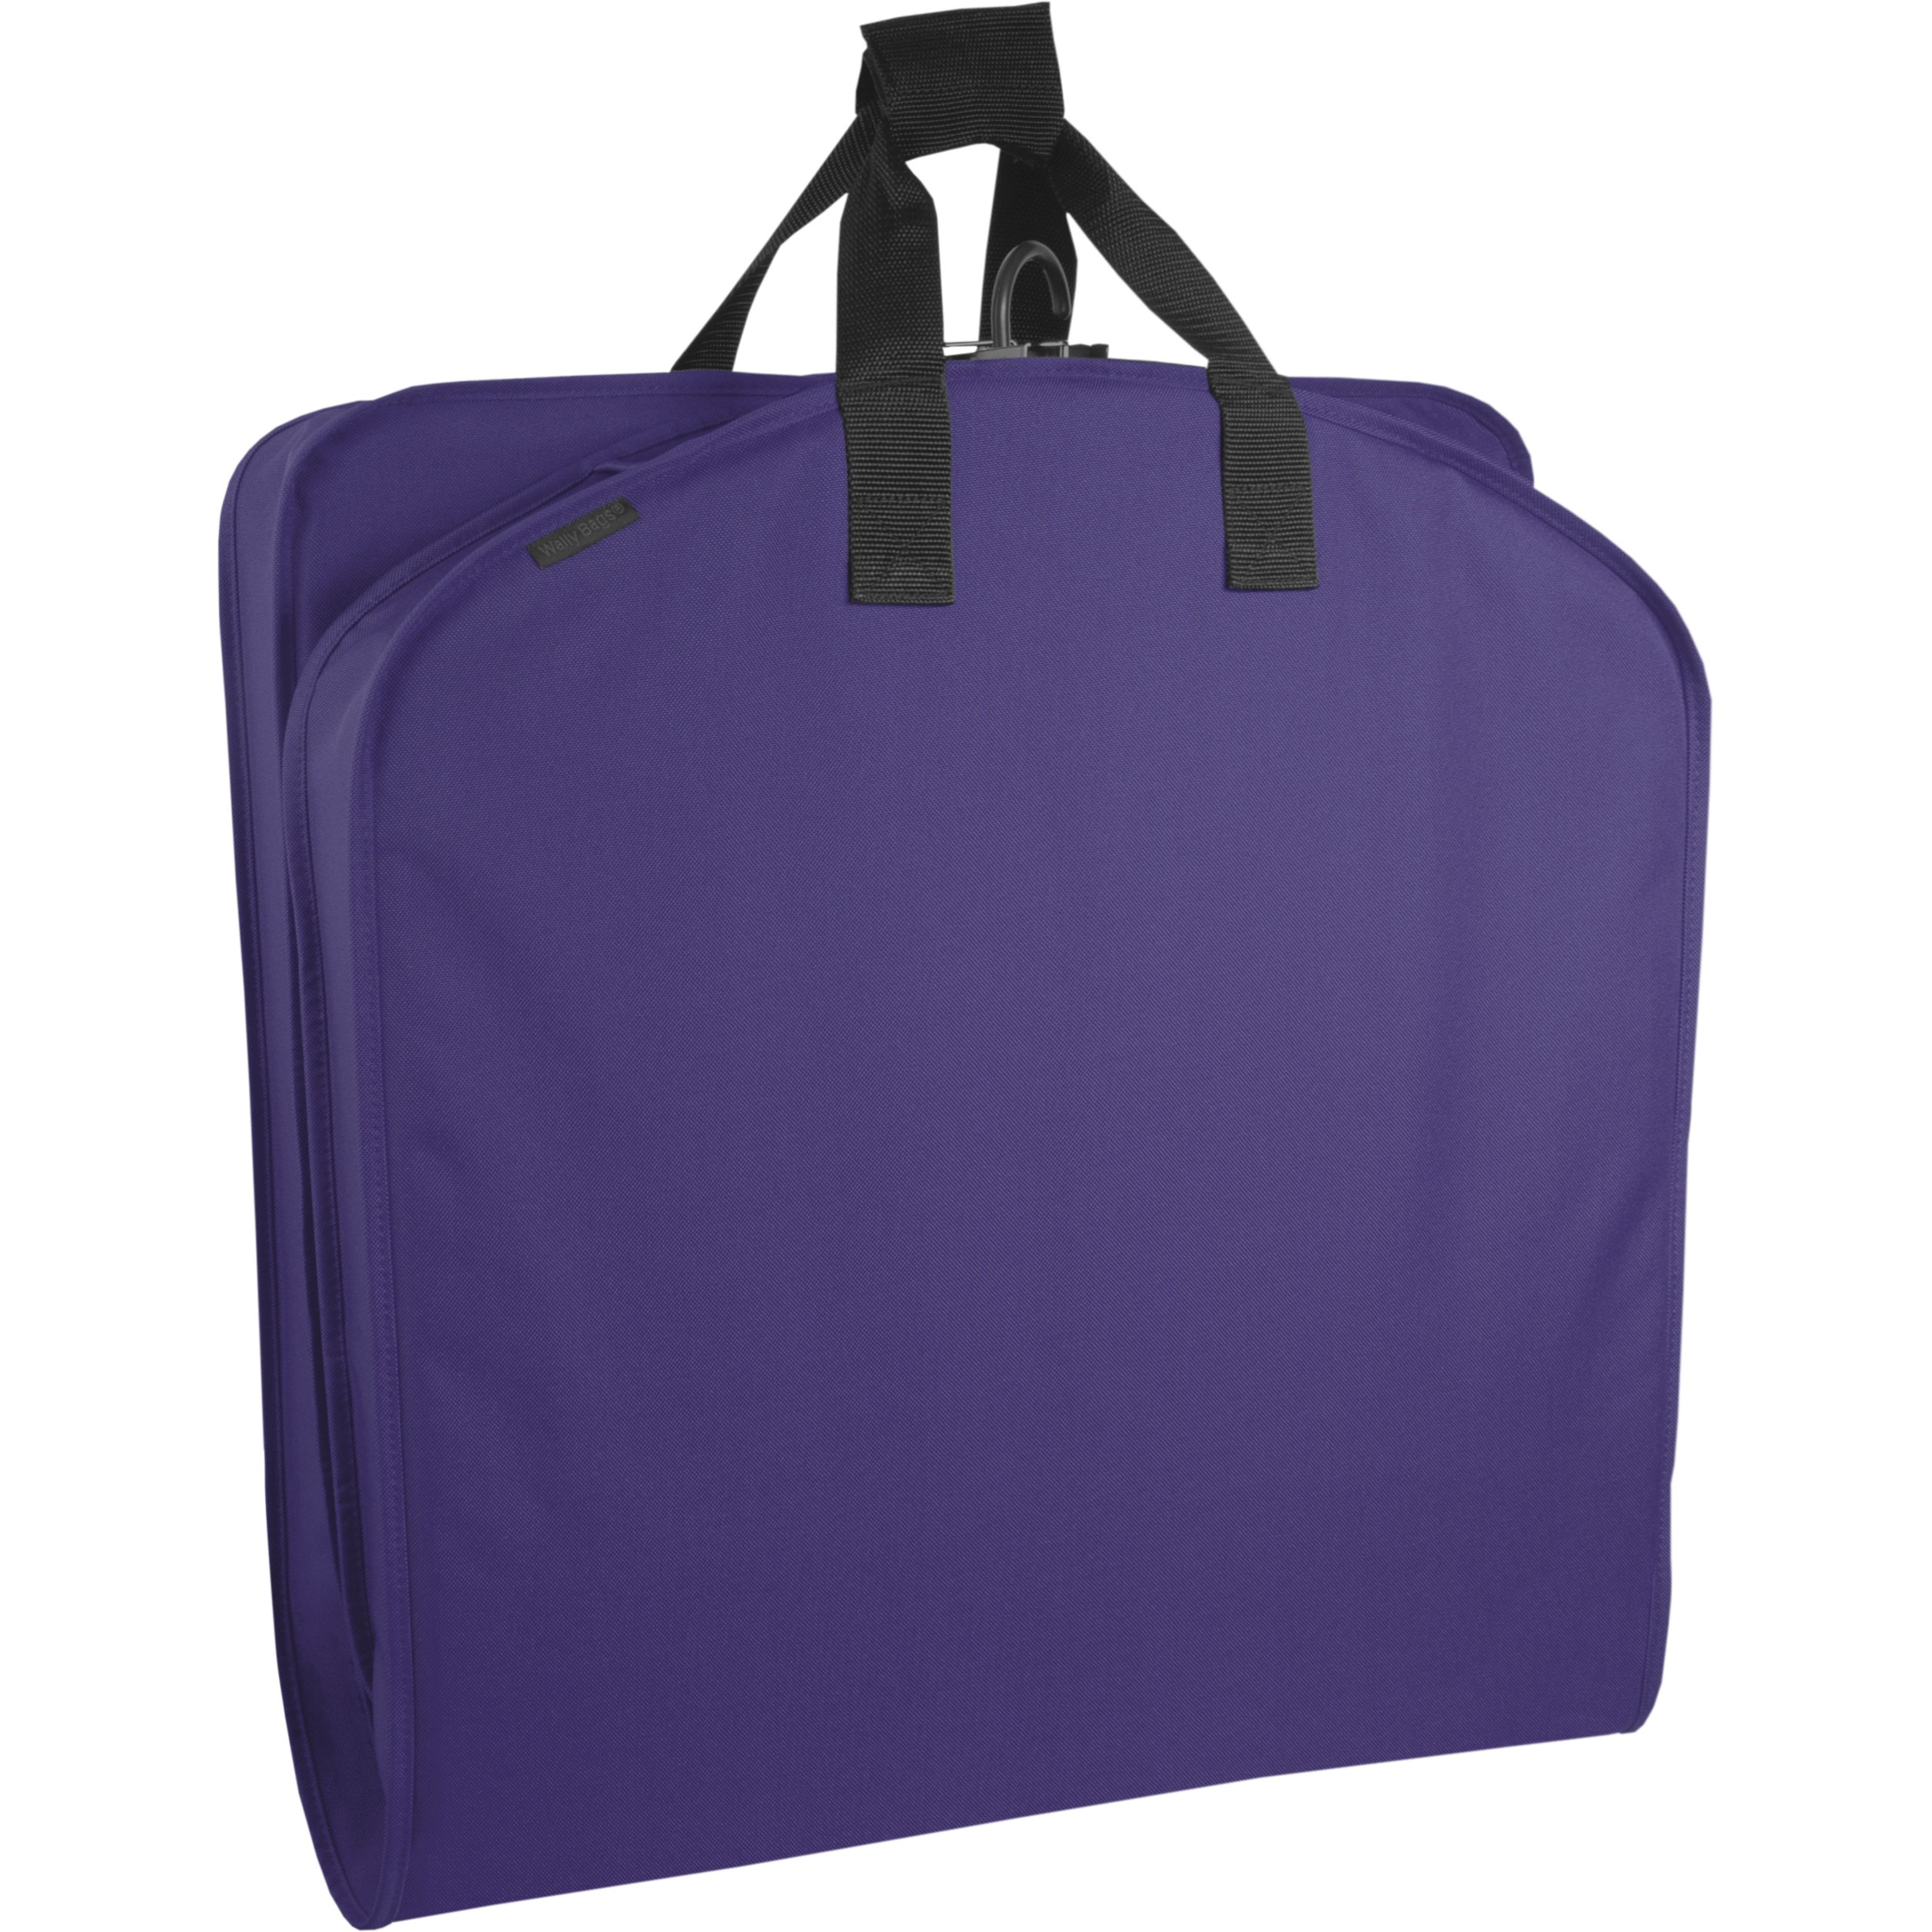 WallyBags Luggage 40'' Garment Bag, Purple